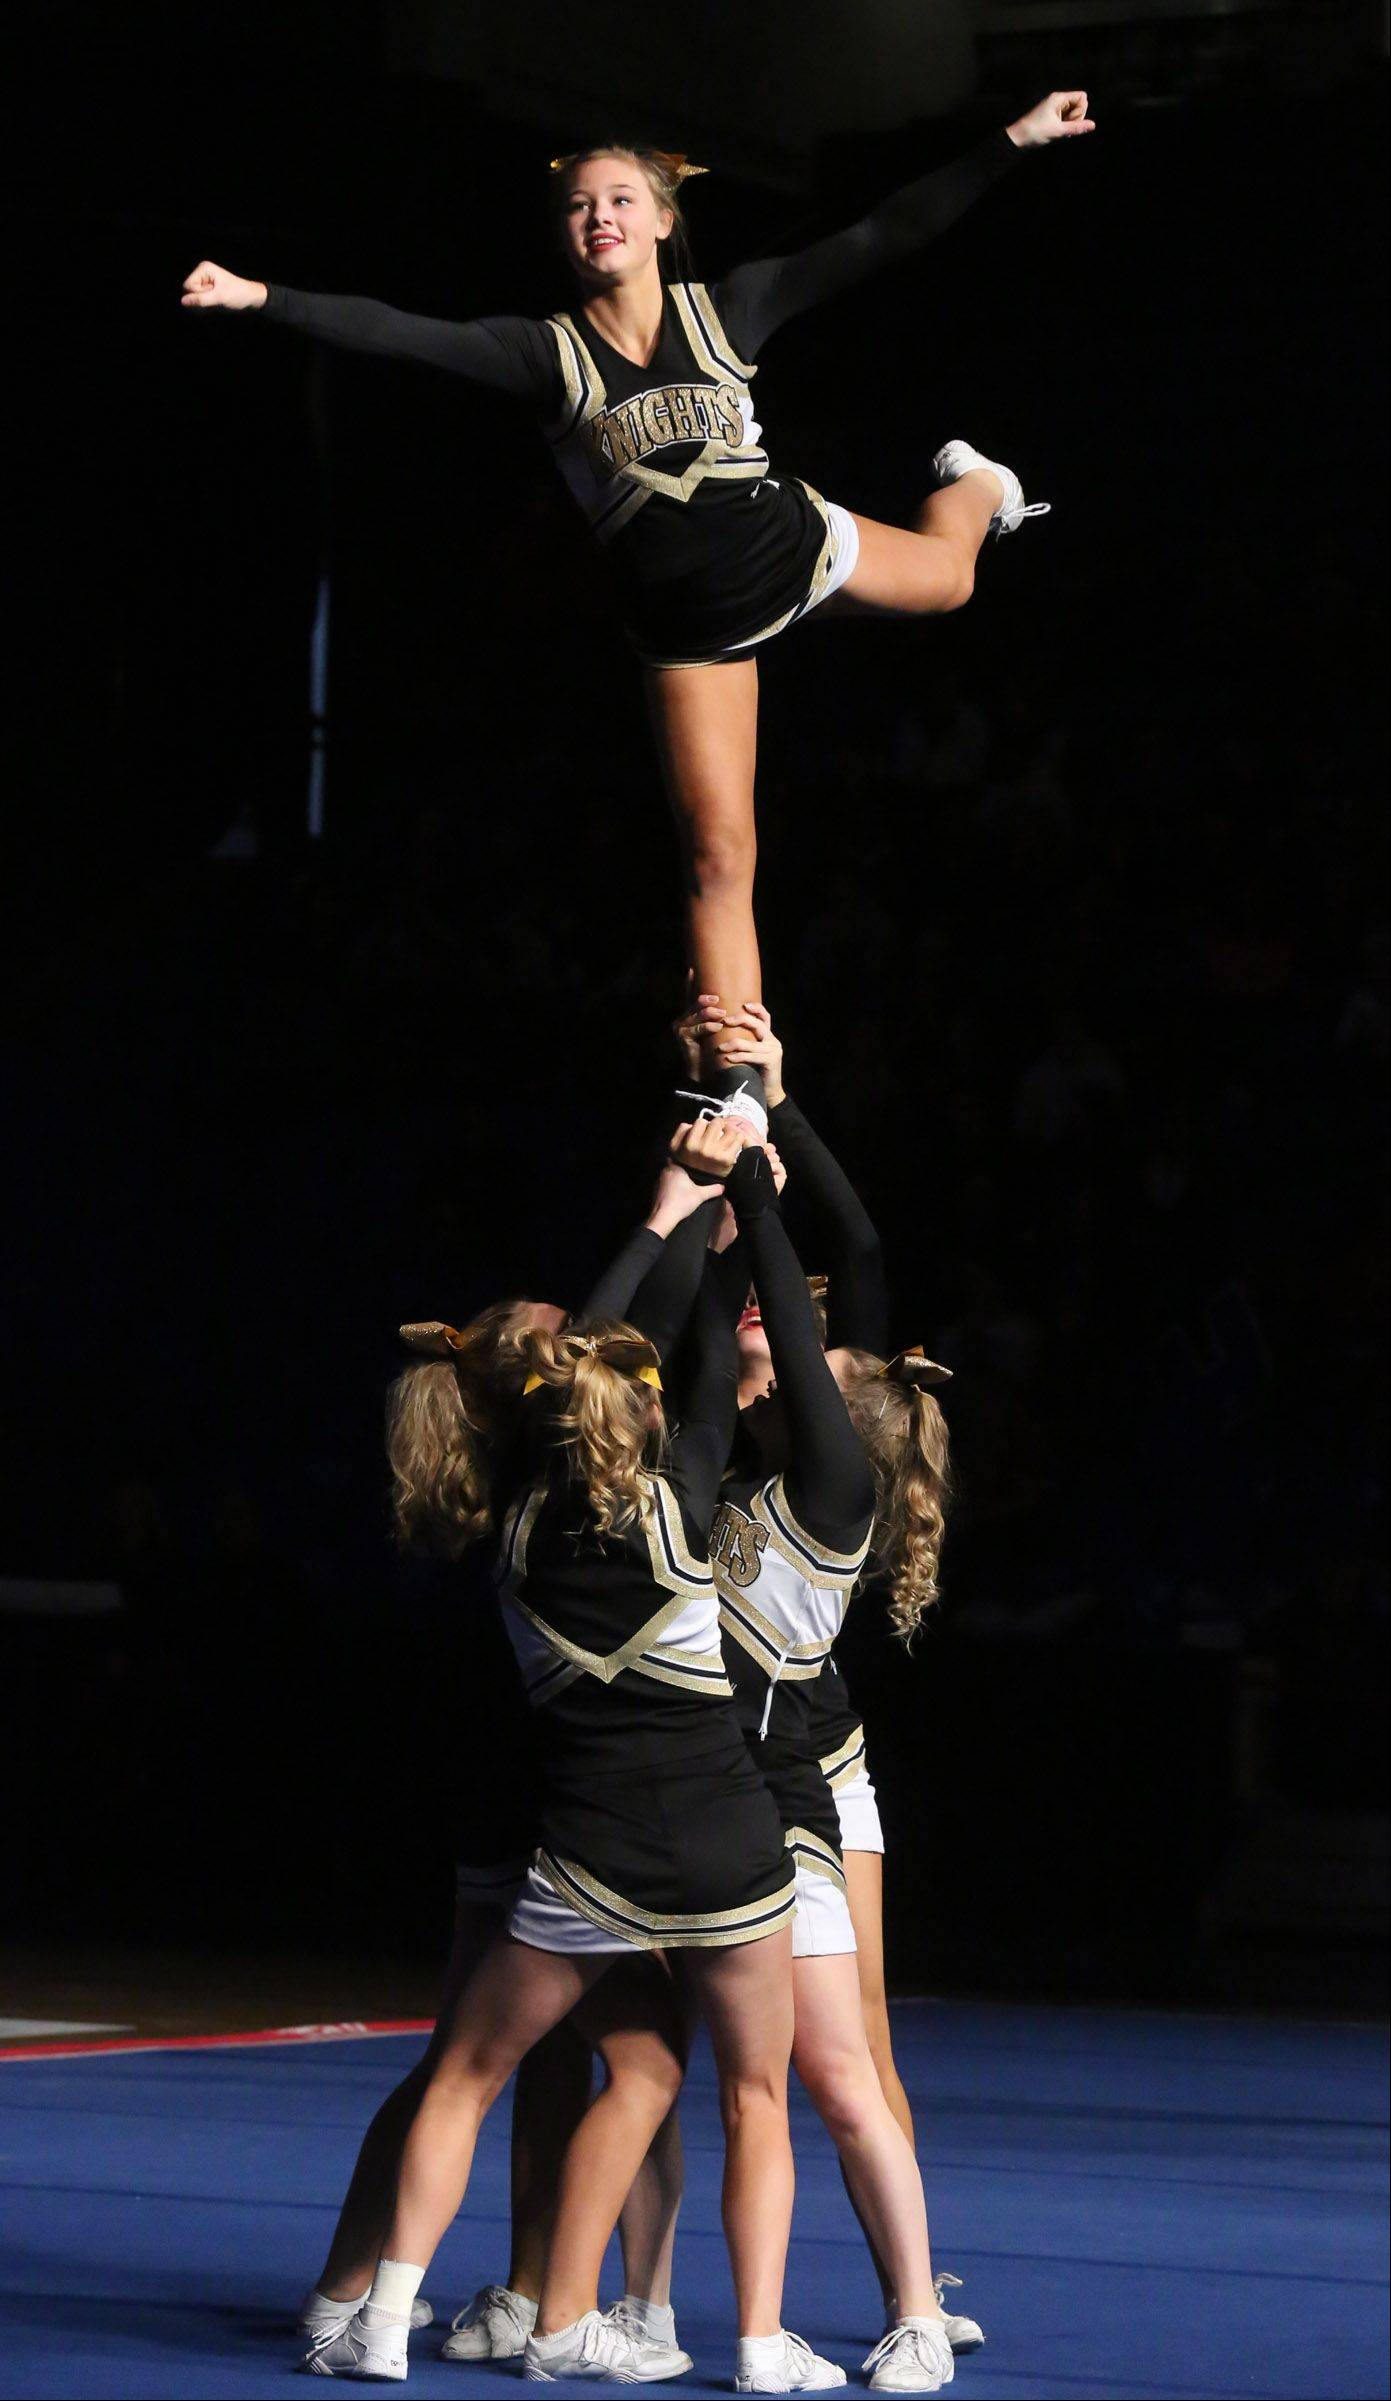 Grayslake North High School's cheer team performs in the medium team category.